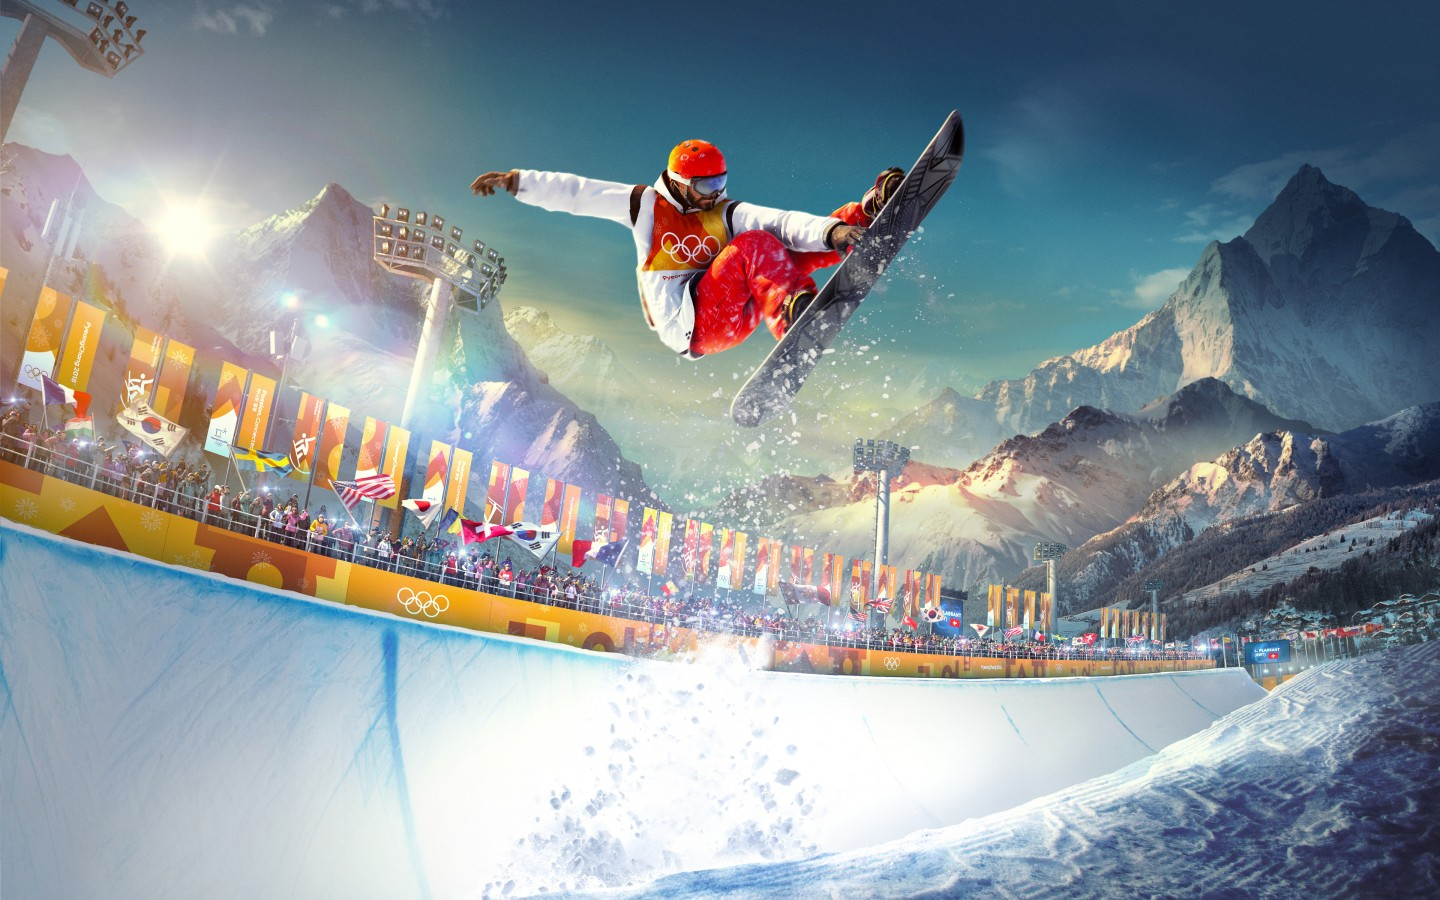 Full Hd Wallpapers For Iphone 4 Steep Winter Games Edition 4k Wallpapers Hd Wallpapers